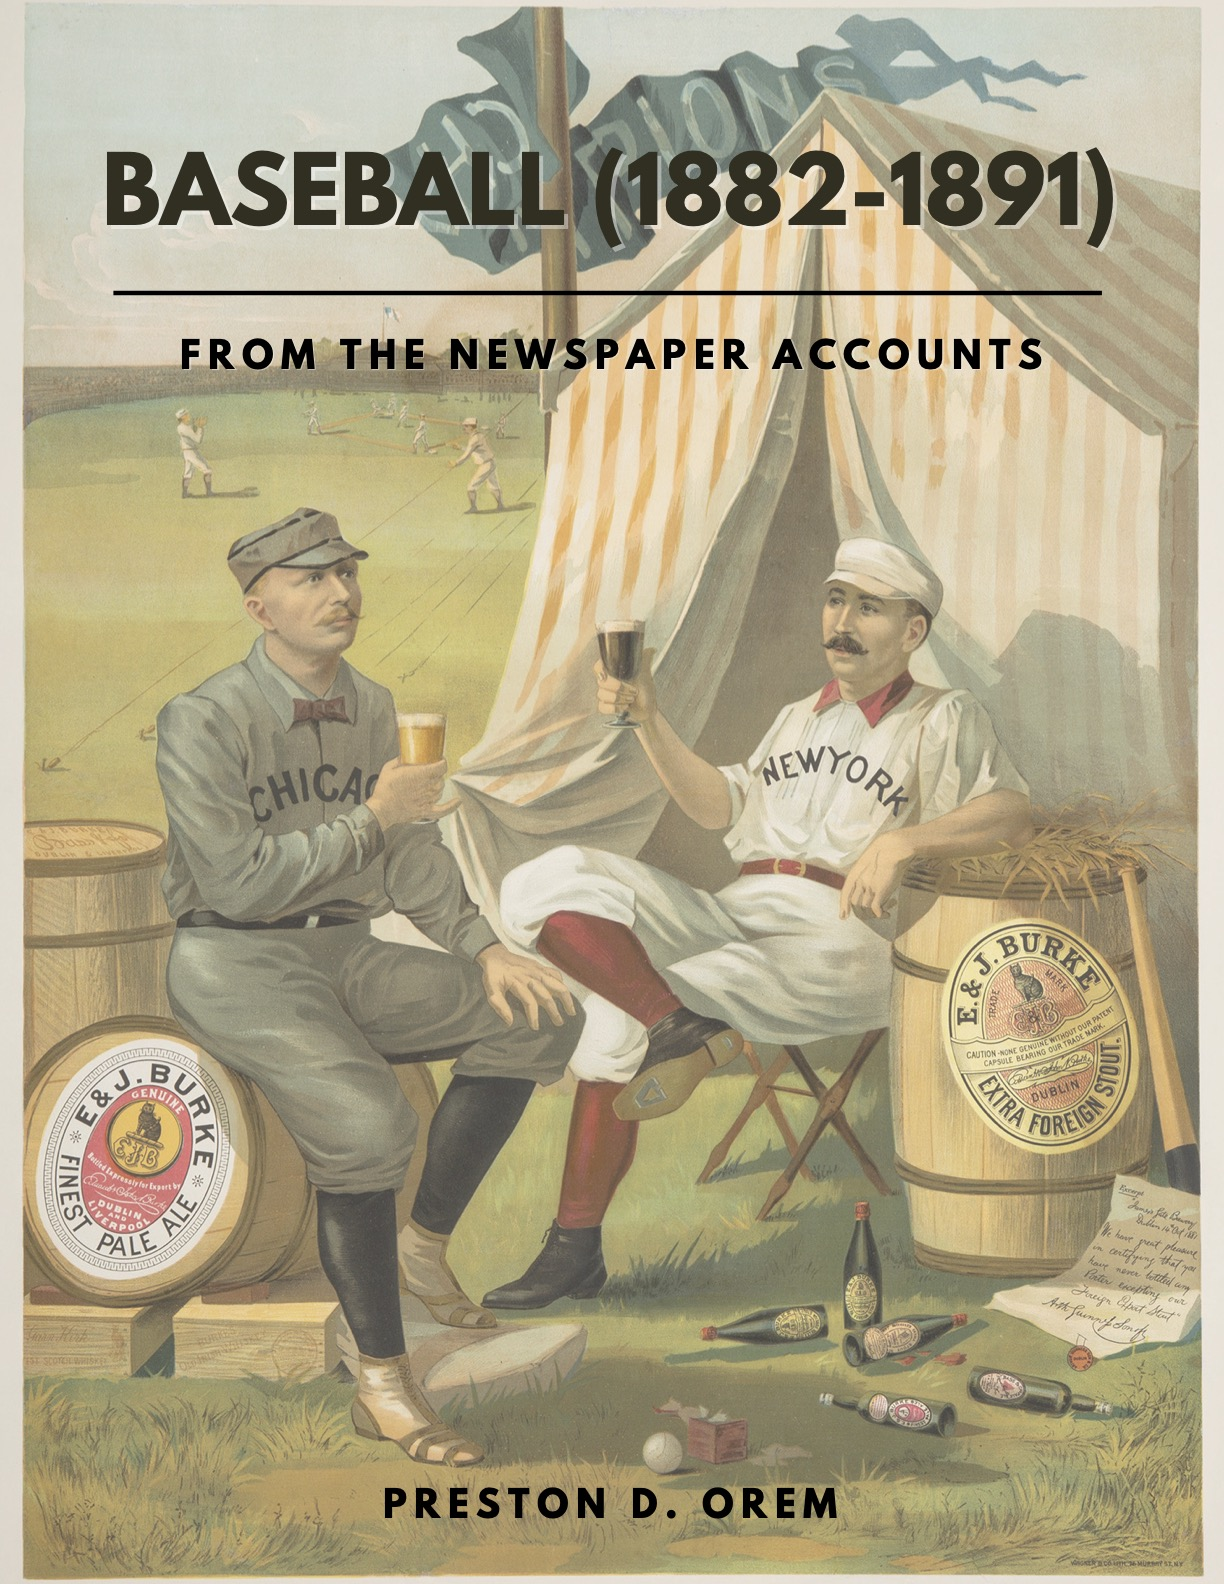 Preston Orem's Baseball From the Newspaper Accounts (1882-1891)